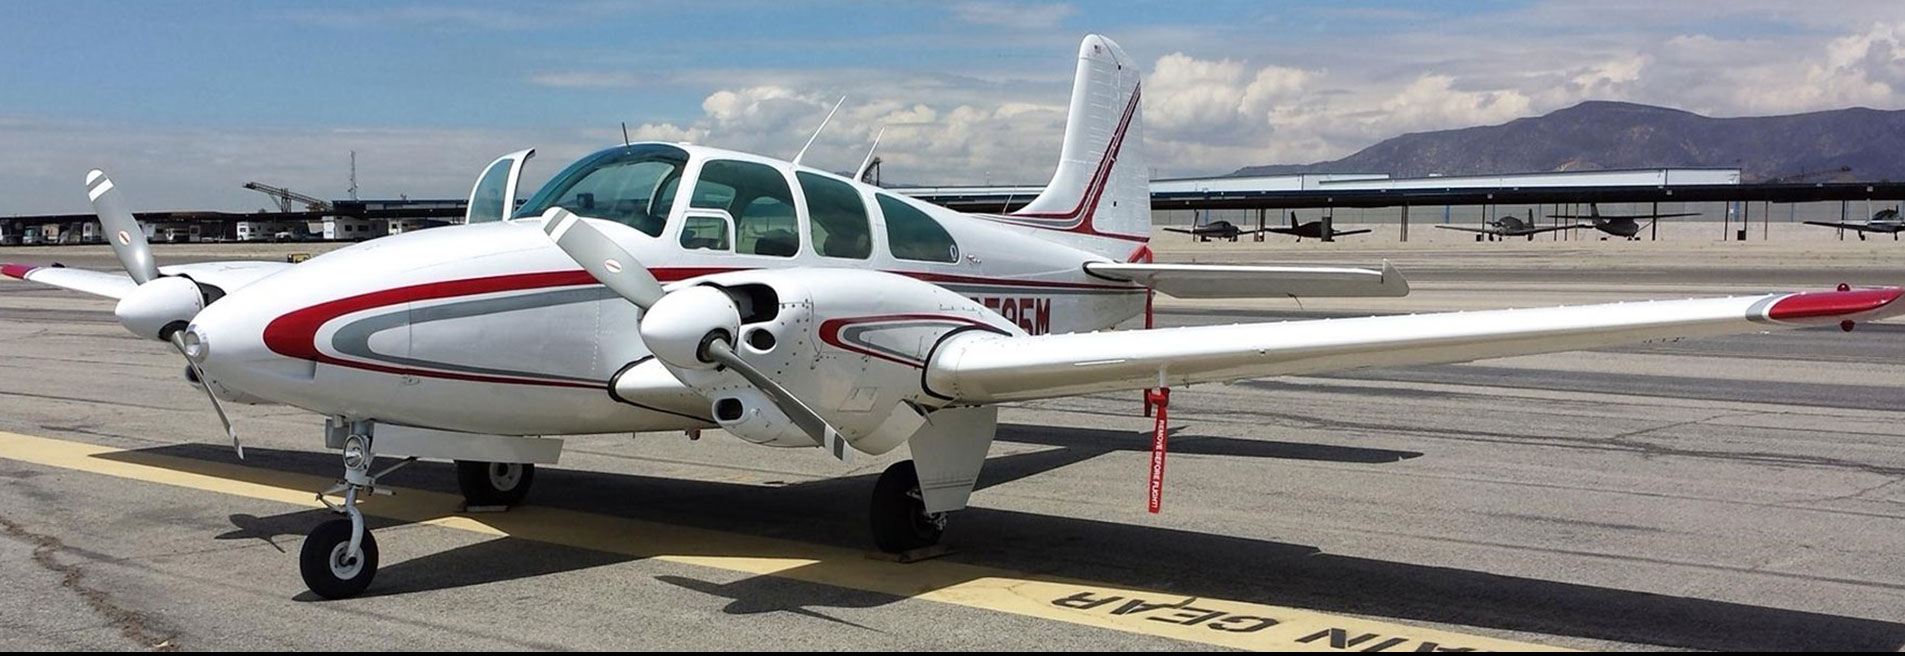 Beechcraft 36 Bonanza, Beechcraft 35 Bonanza, Beechcraft 33 Bonanza, Beechcraft Debonair, Beechcraft Sierra, Beechcraft Musketeer, Beechcraft Queen Air 80, Beechcraft 60 Duke, Beechcraft Beech 18, Beechcraft Twin Bonanza, Beechcraft 58 Baron,  Beechcraft 55 Baron, Beechcraft Travel Air 95, Beechcraft Duchess